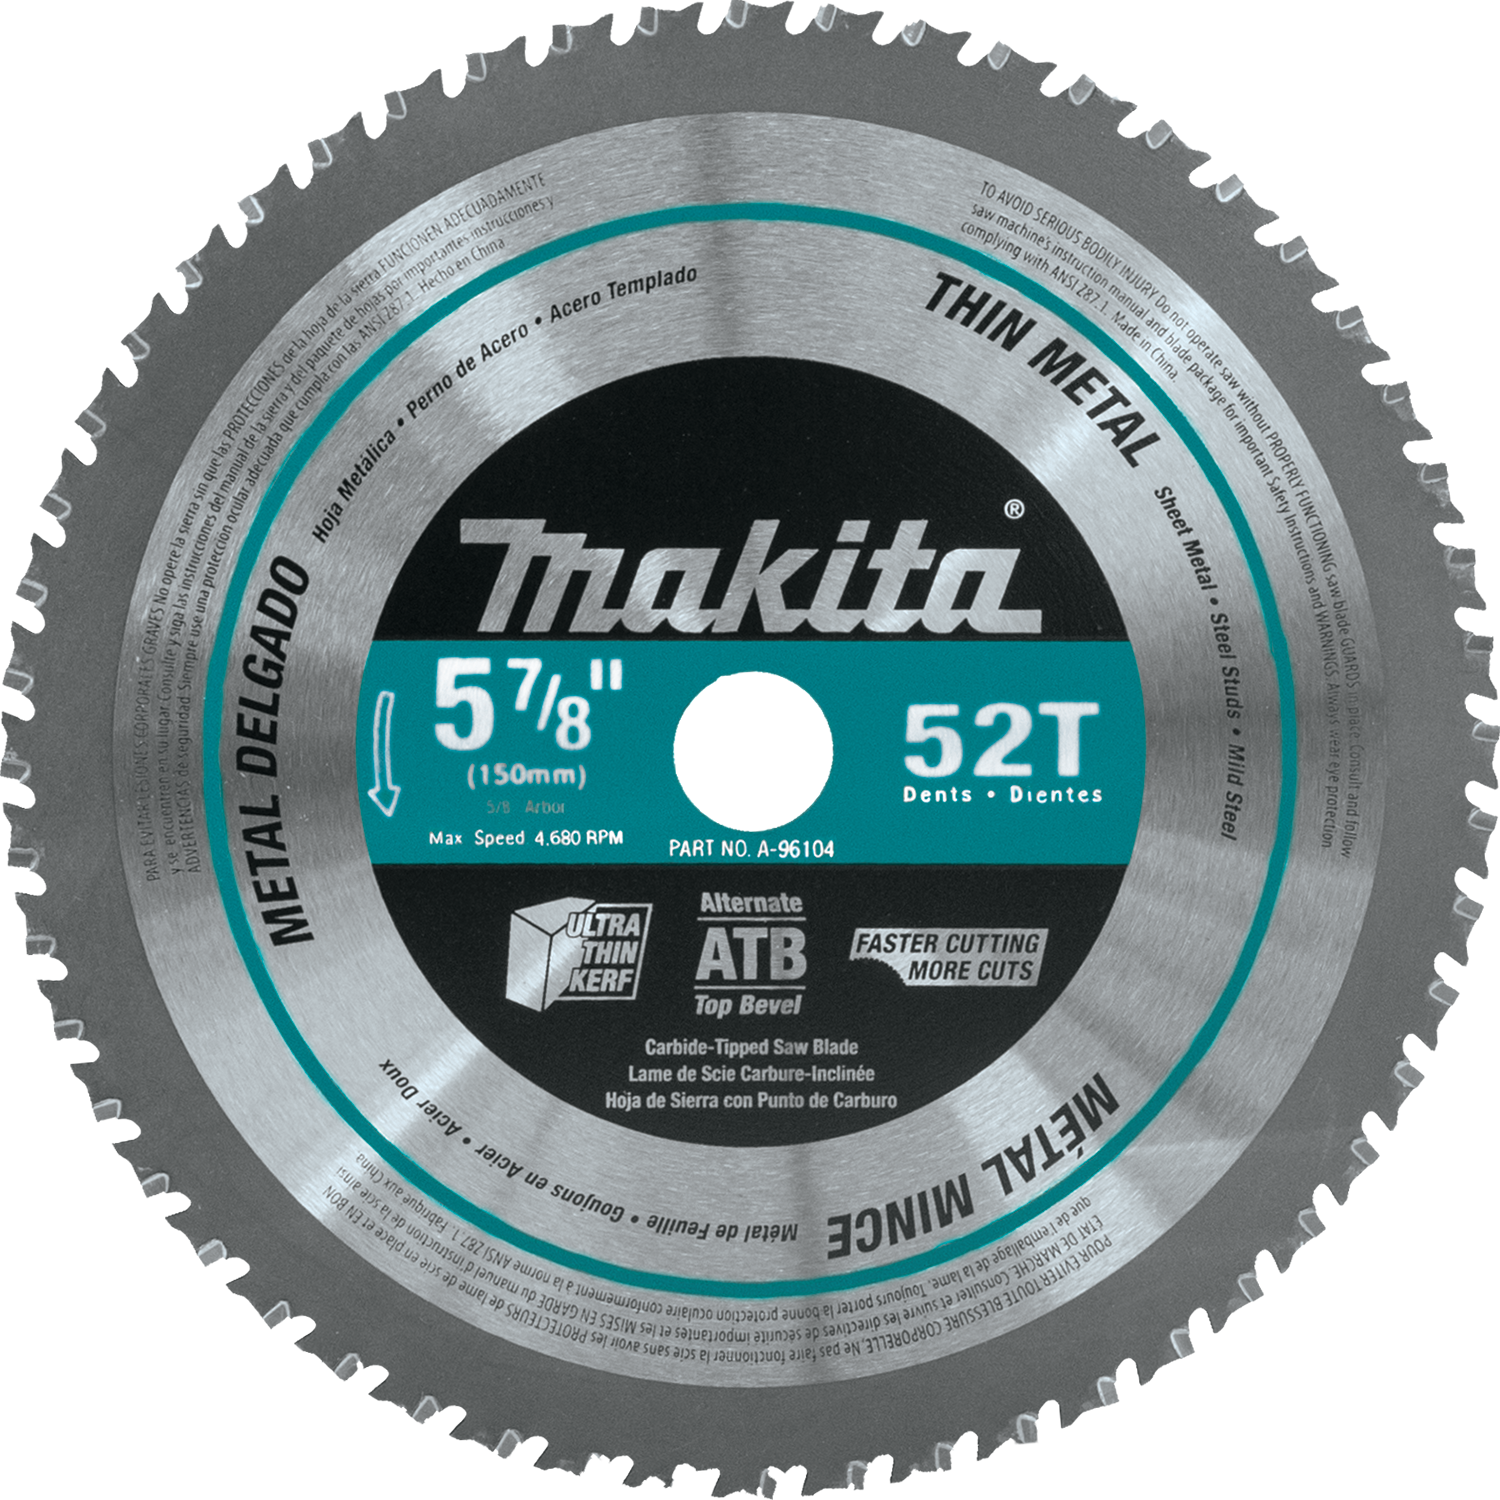 Makita usa product details a 96104 a 96104 greentooth Gallery